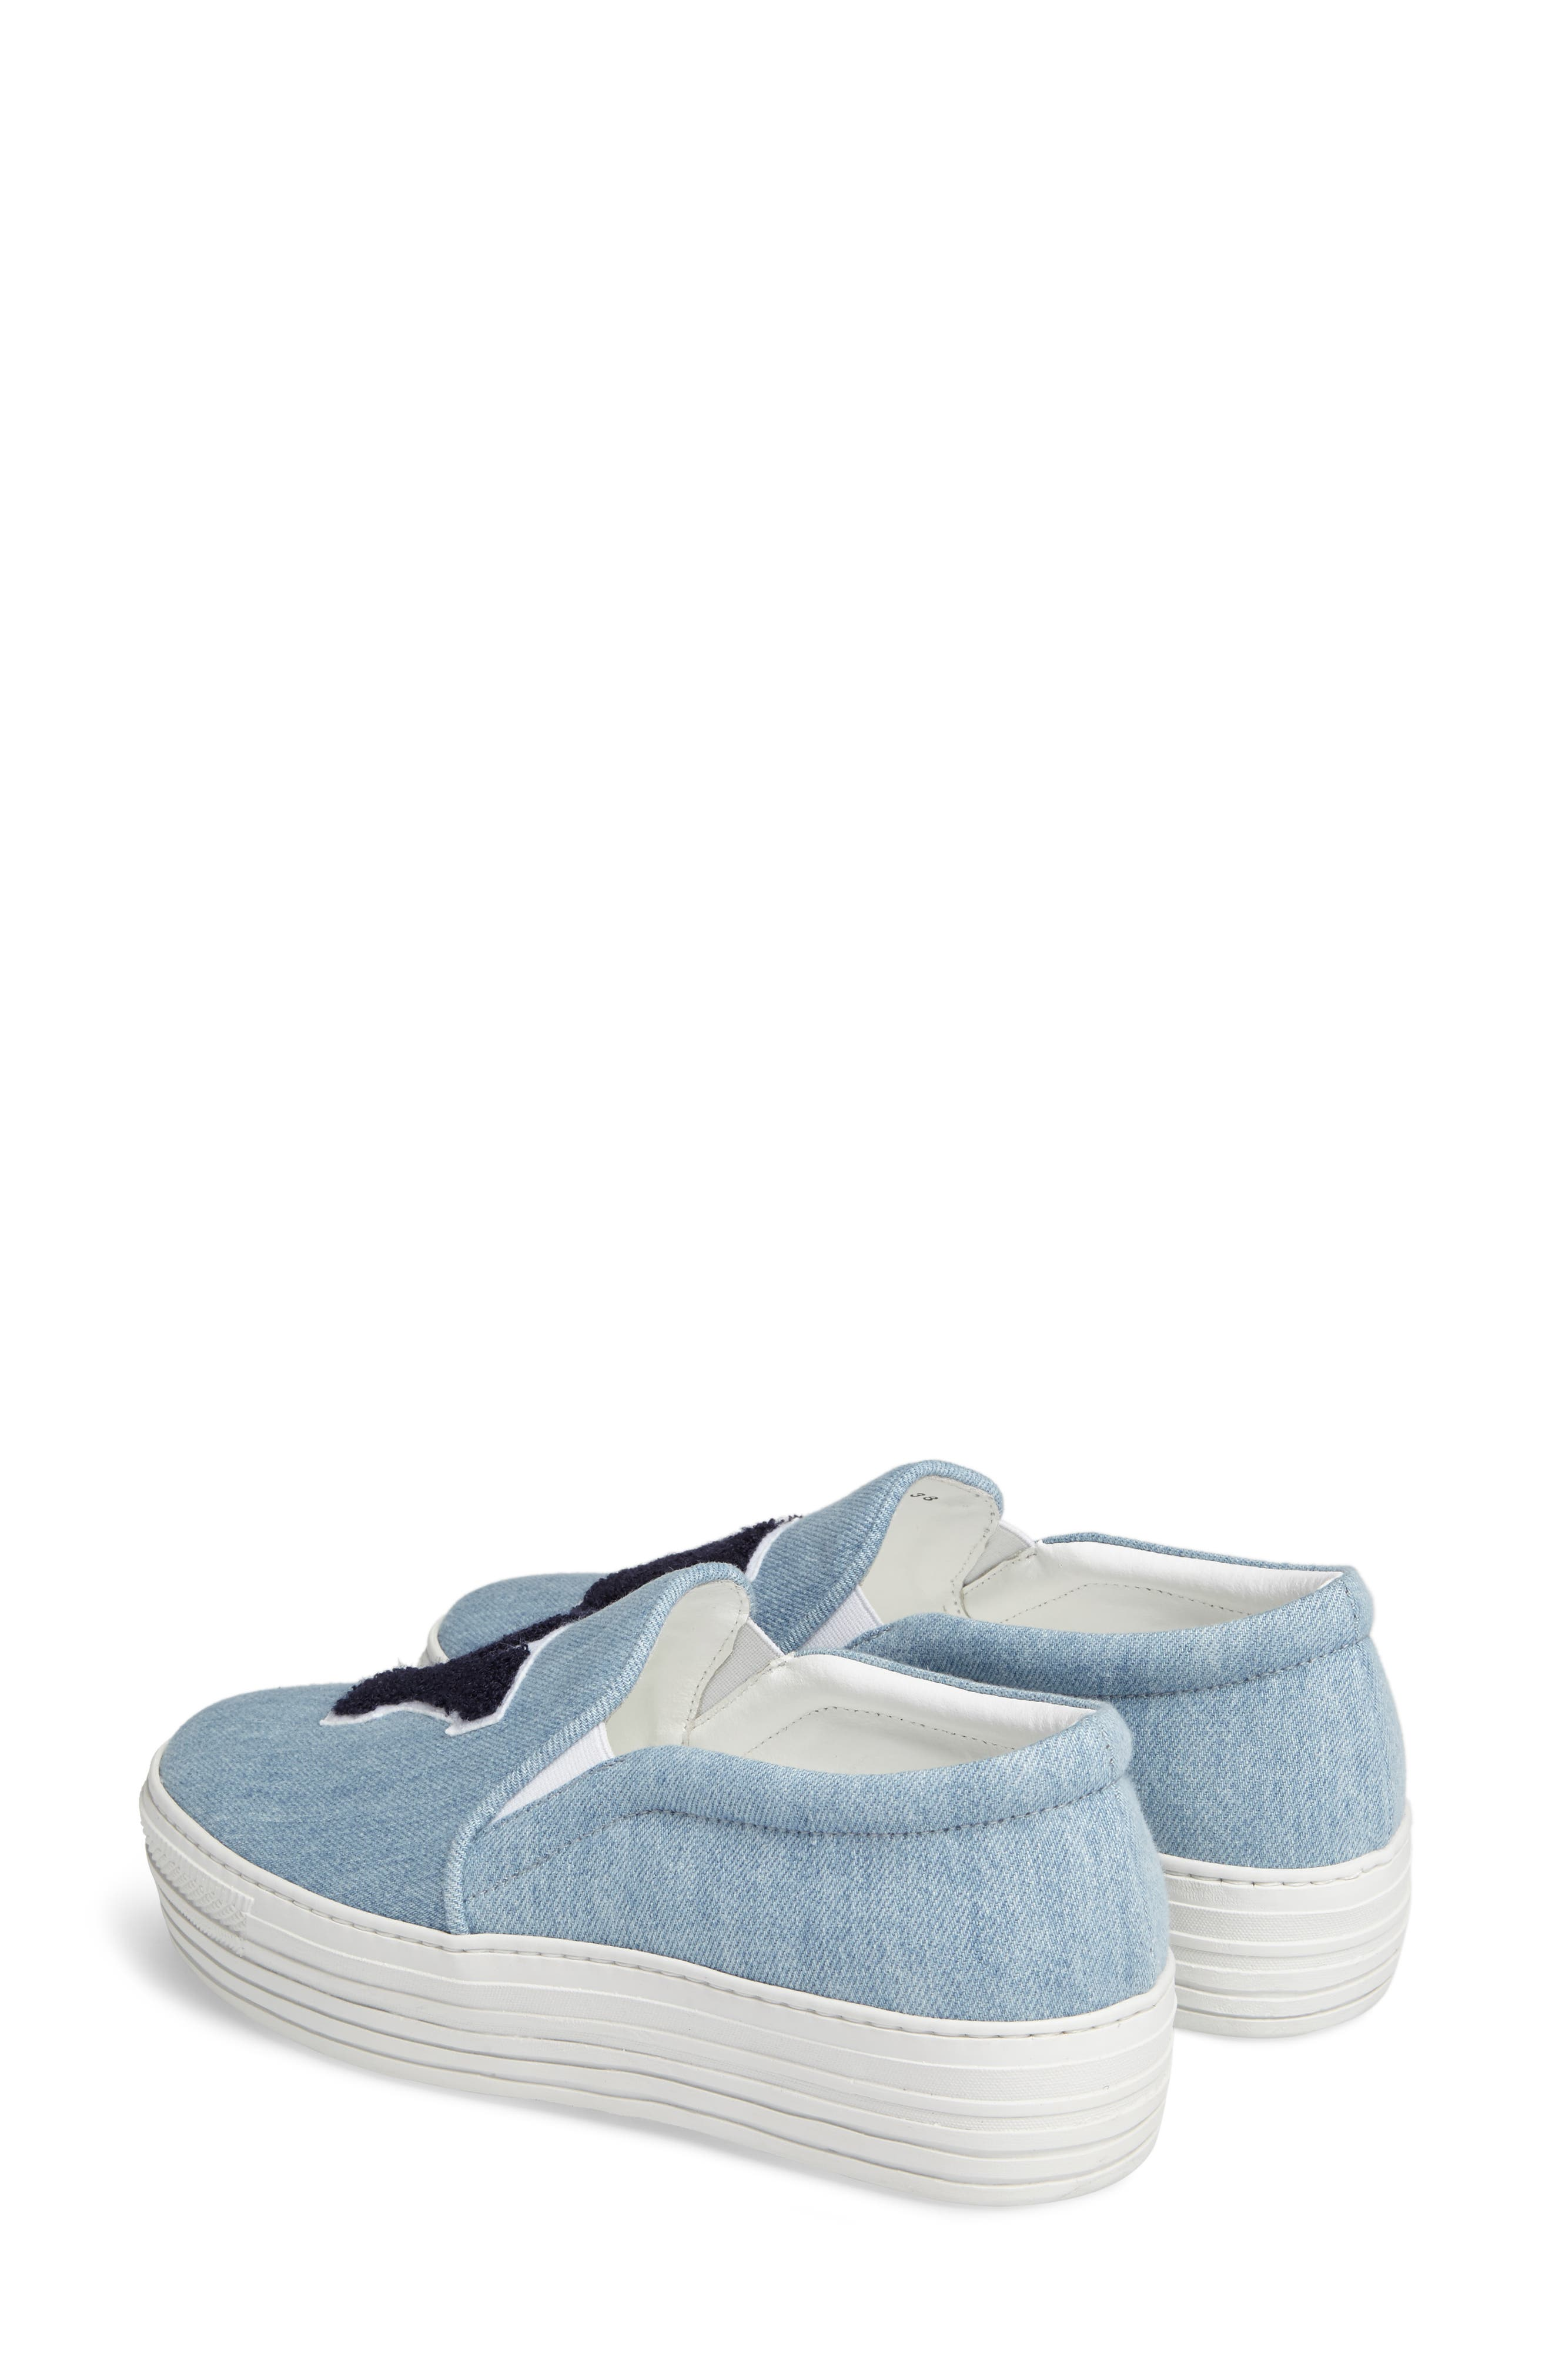 Alternate Image 3  - Joshua Sanders Slip-On Sneaker (Women)